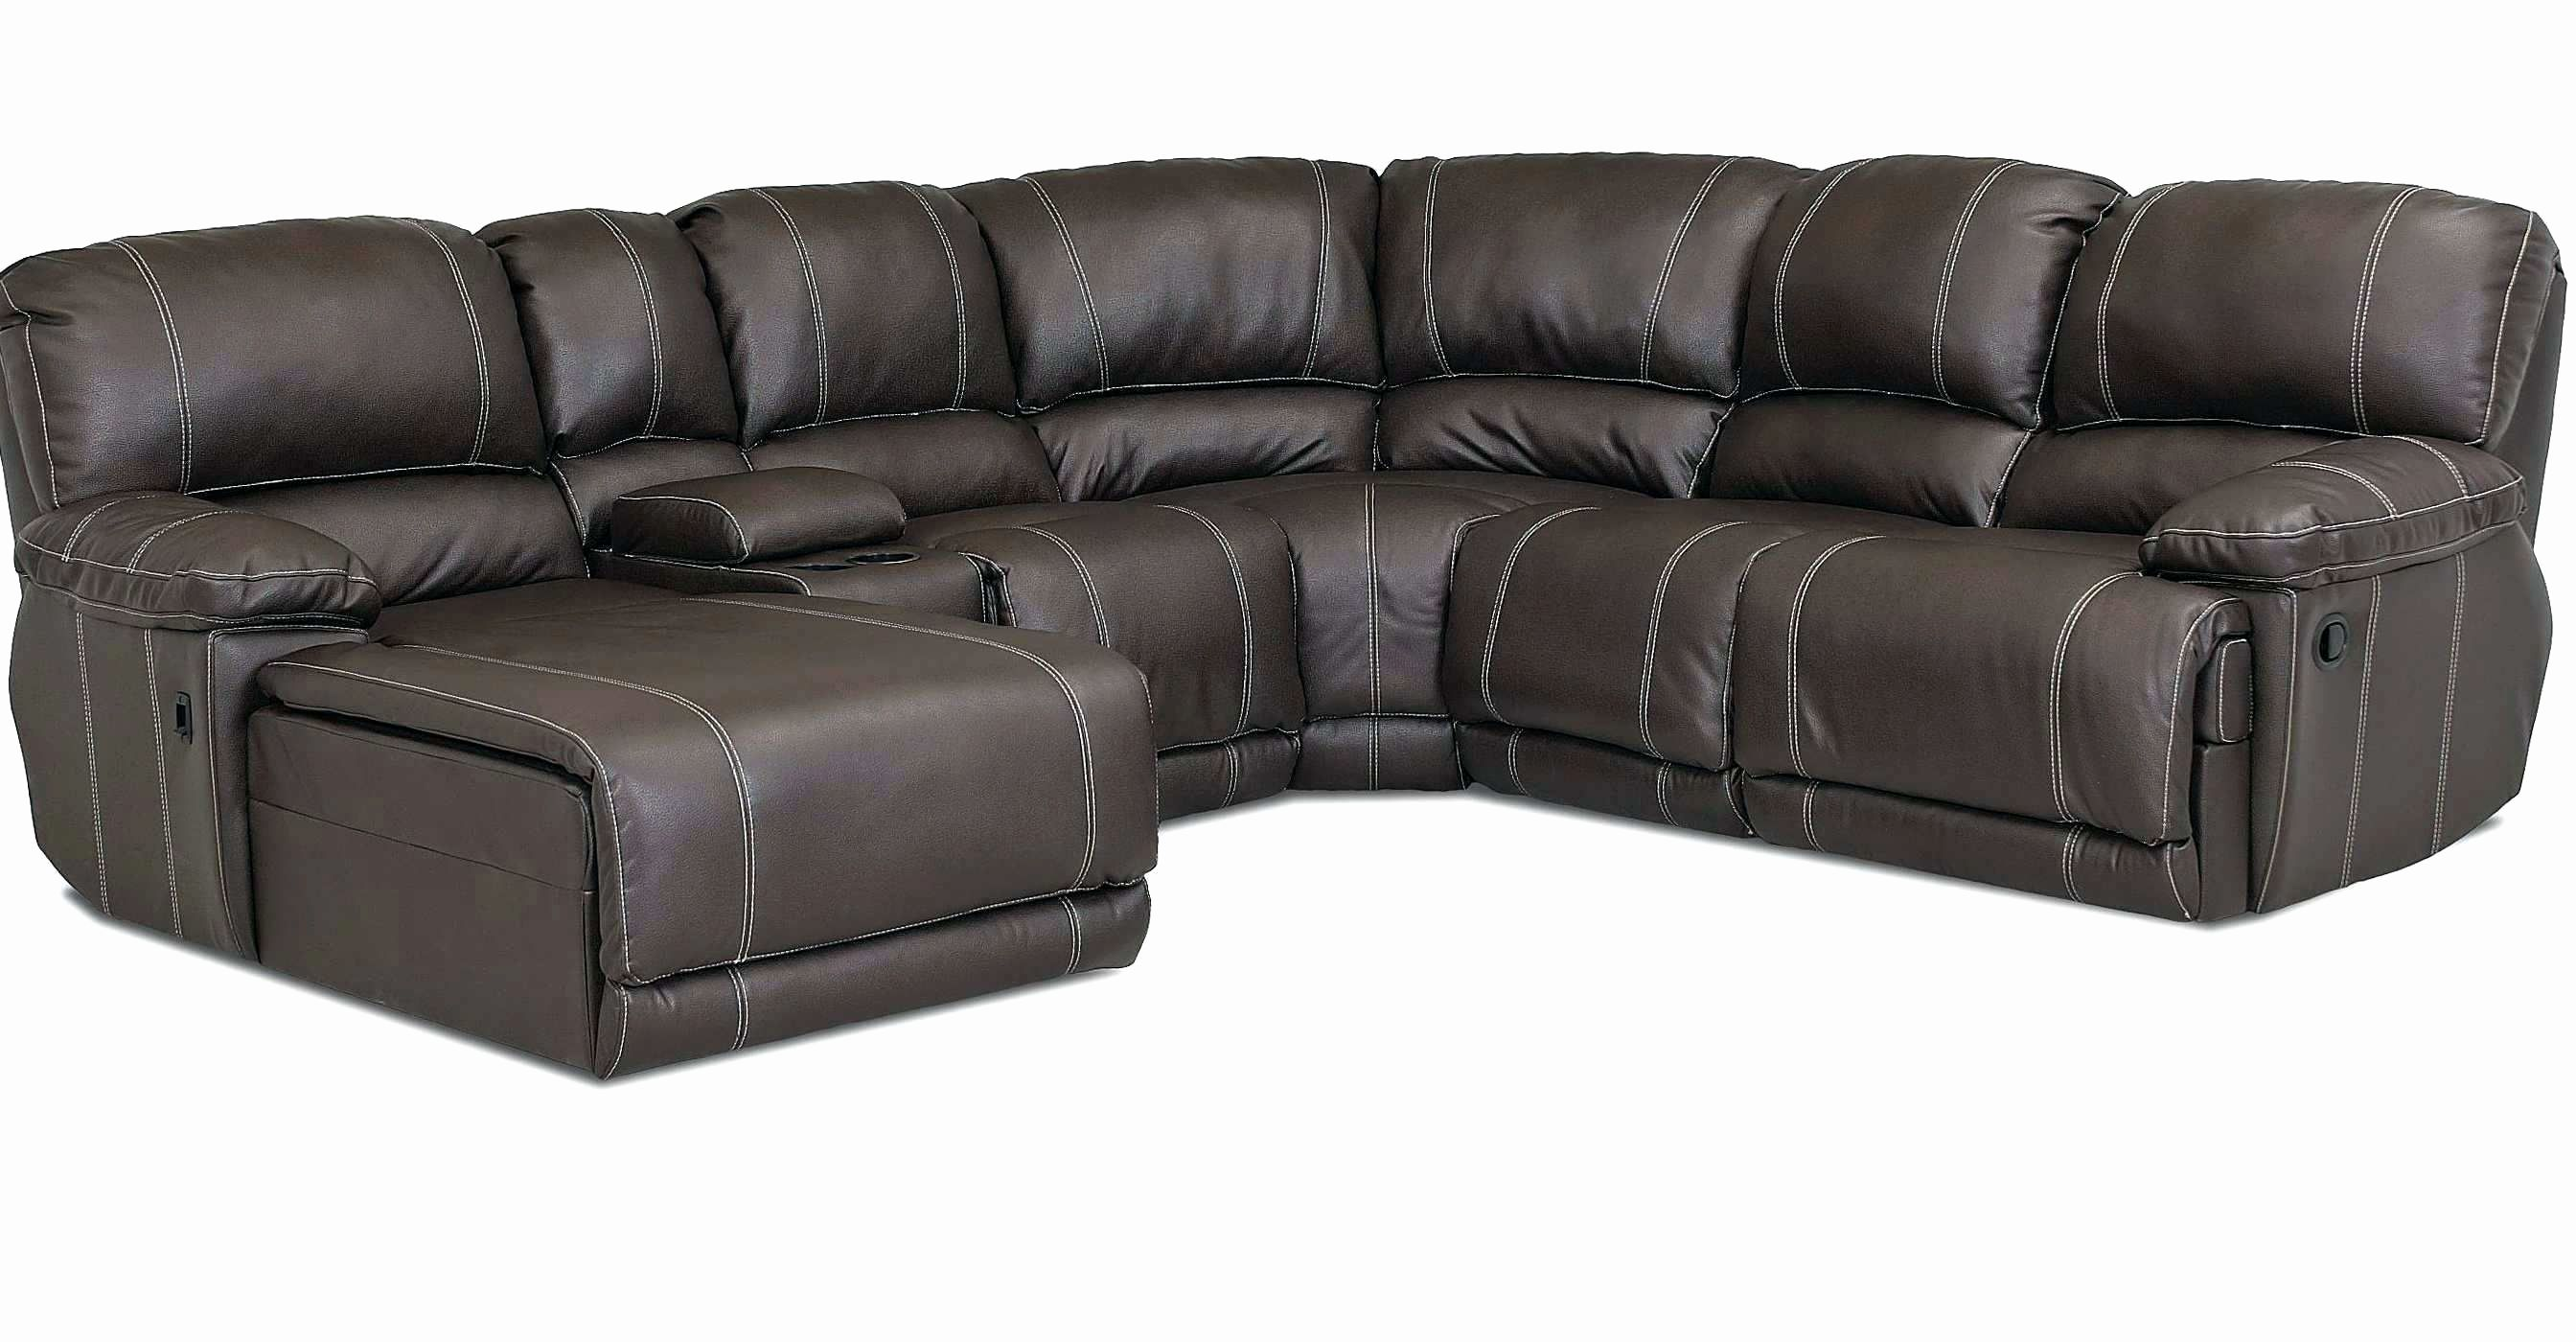 Beautiful Microfiber Reversible Chaise Sectional Sofa